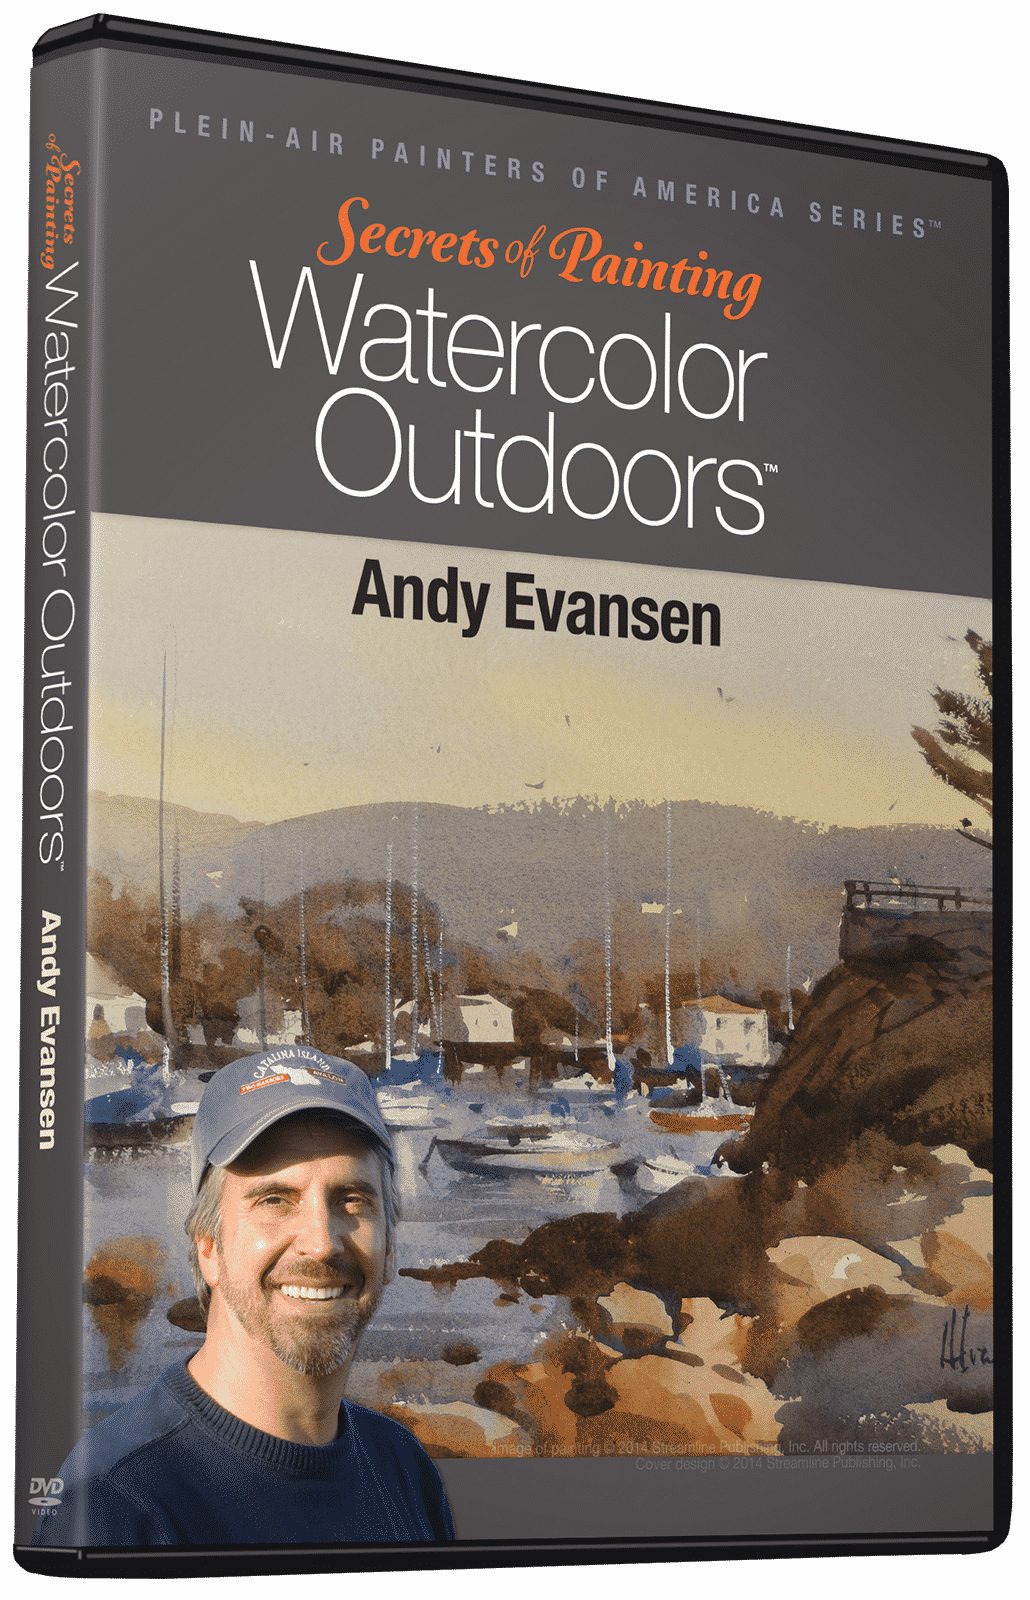 The Secrets of Painting Watercolors Outdoors with Andy Evansen